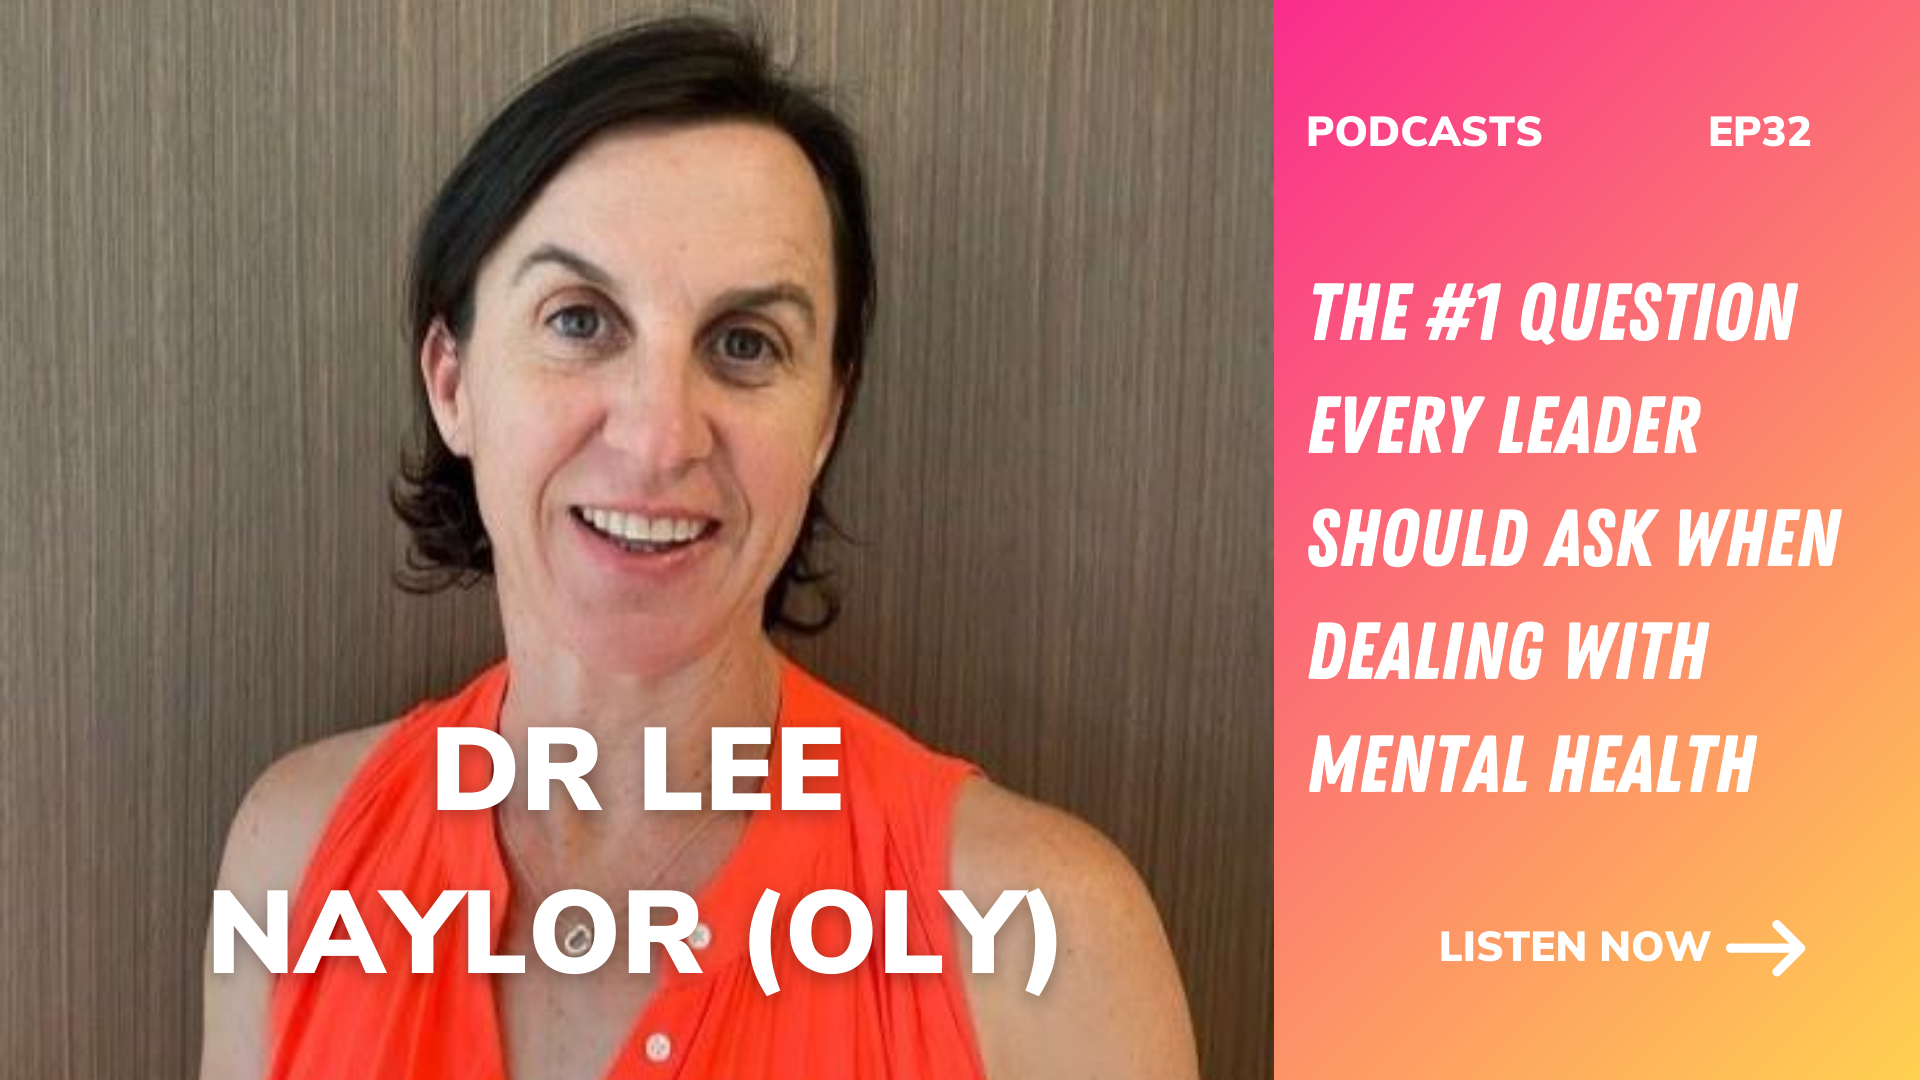 Dr lee naylor oly the 1 question every leader should ask when dealing with mental health